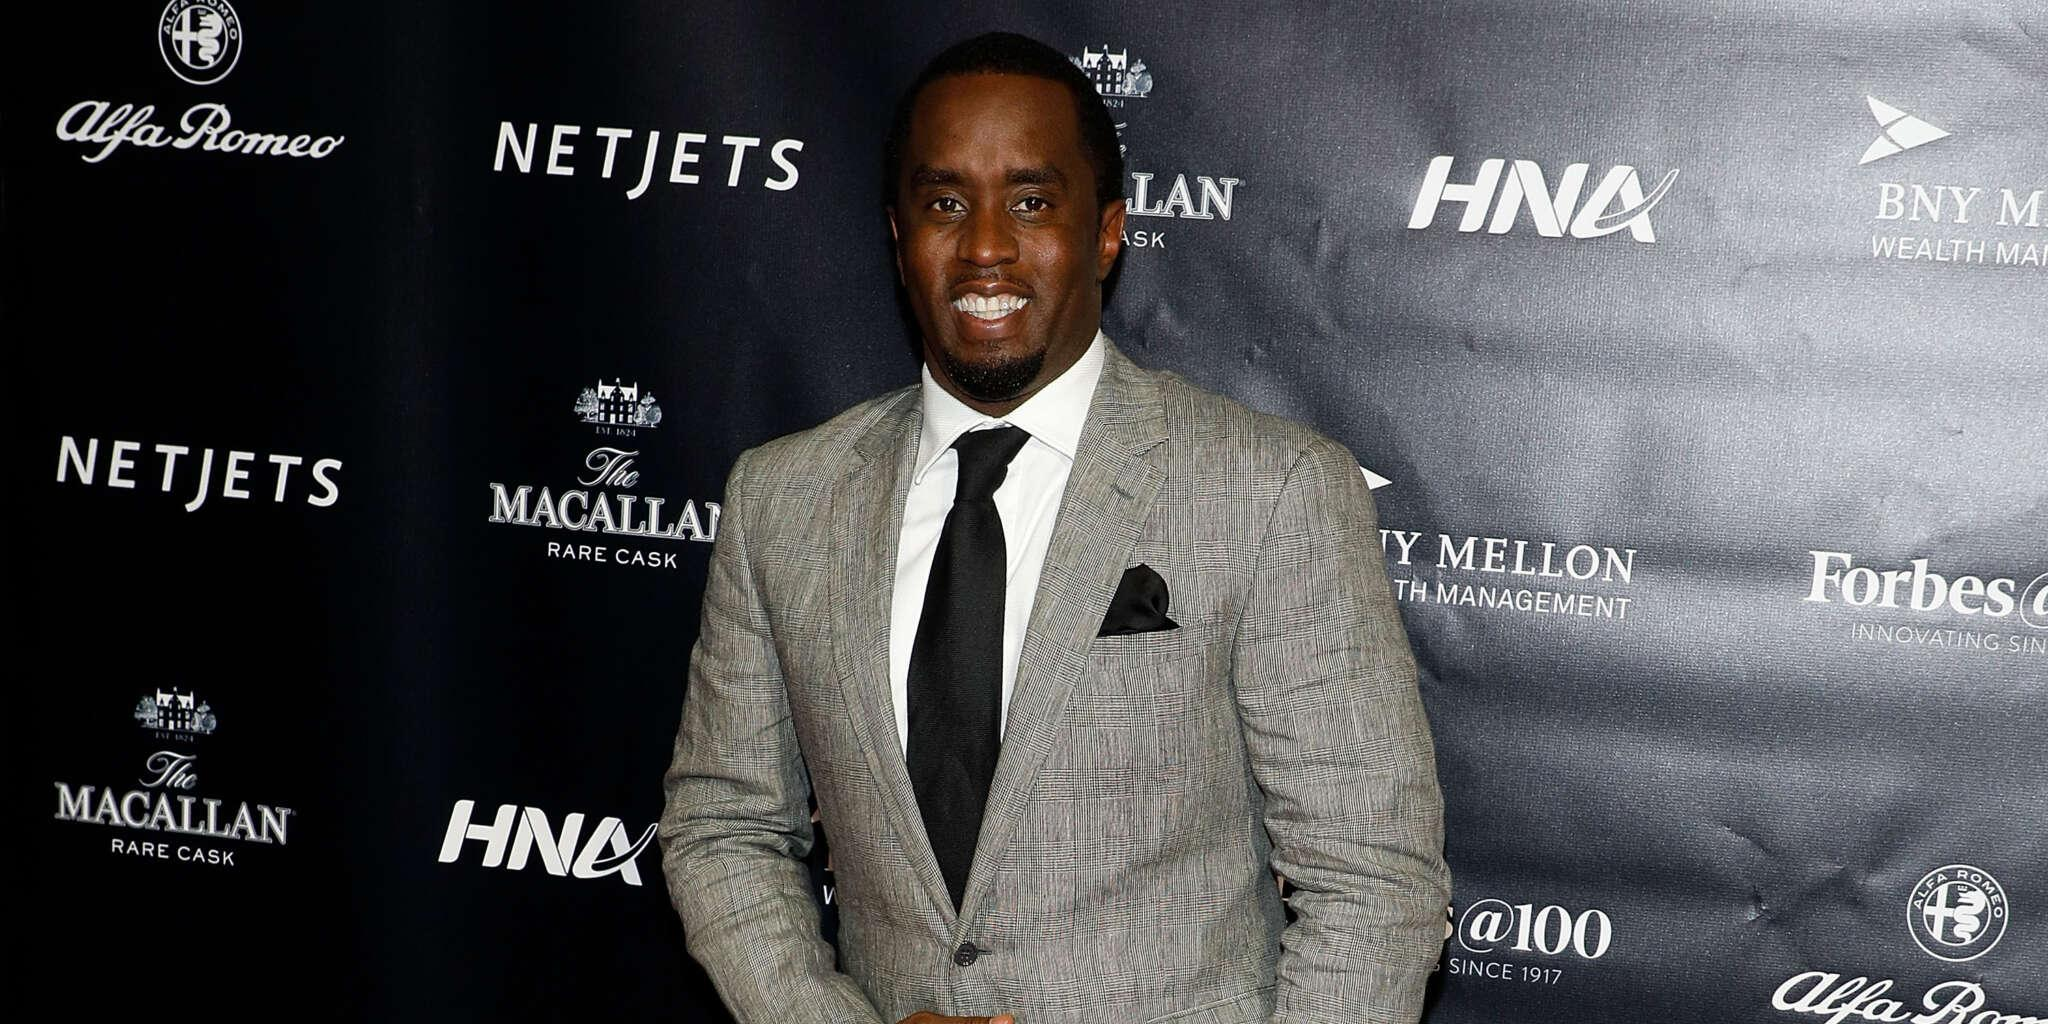 Diddy's Fans Say He's Killing It In This Recent Photo - Check It Out Here